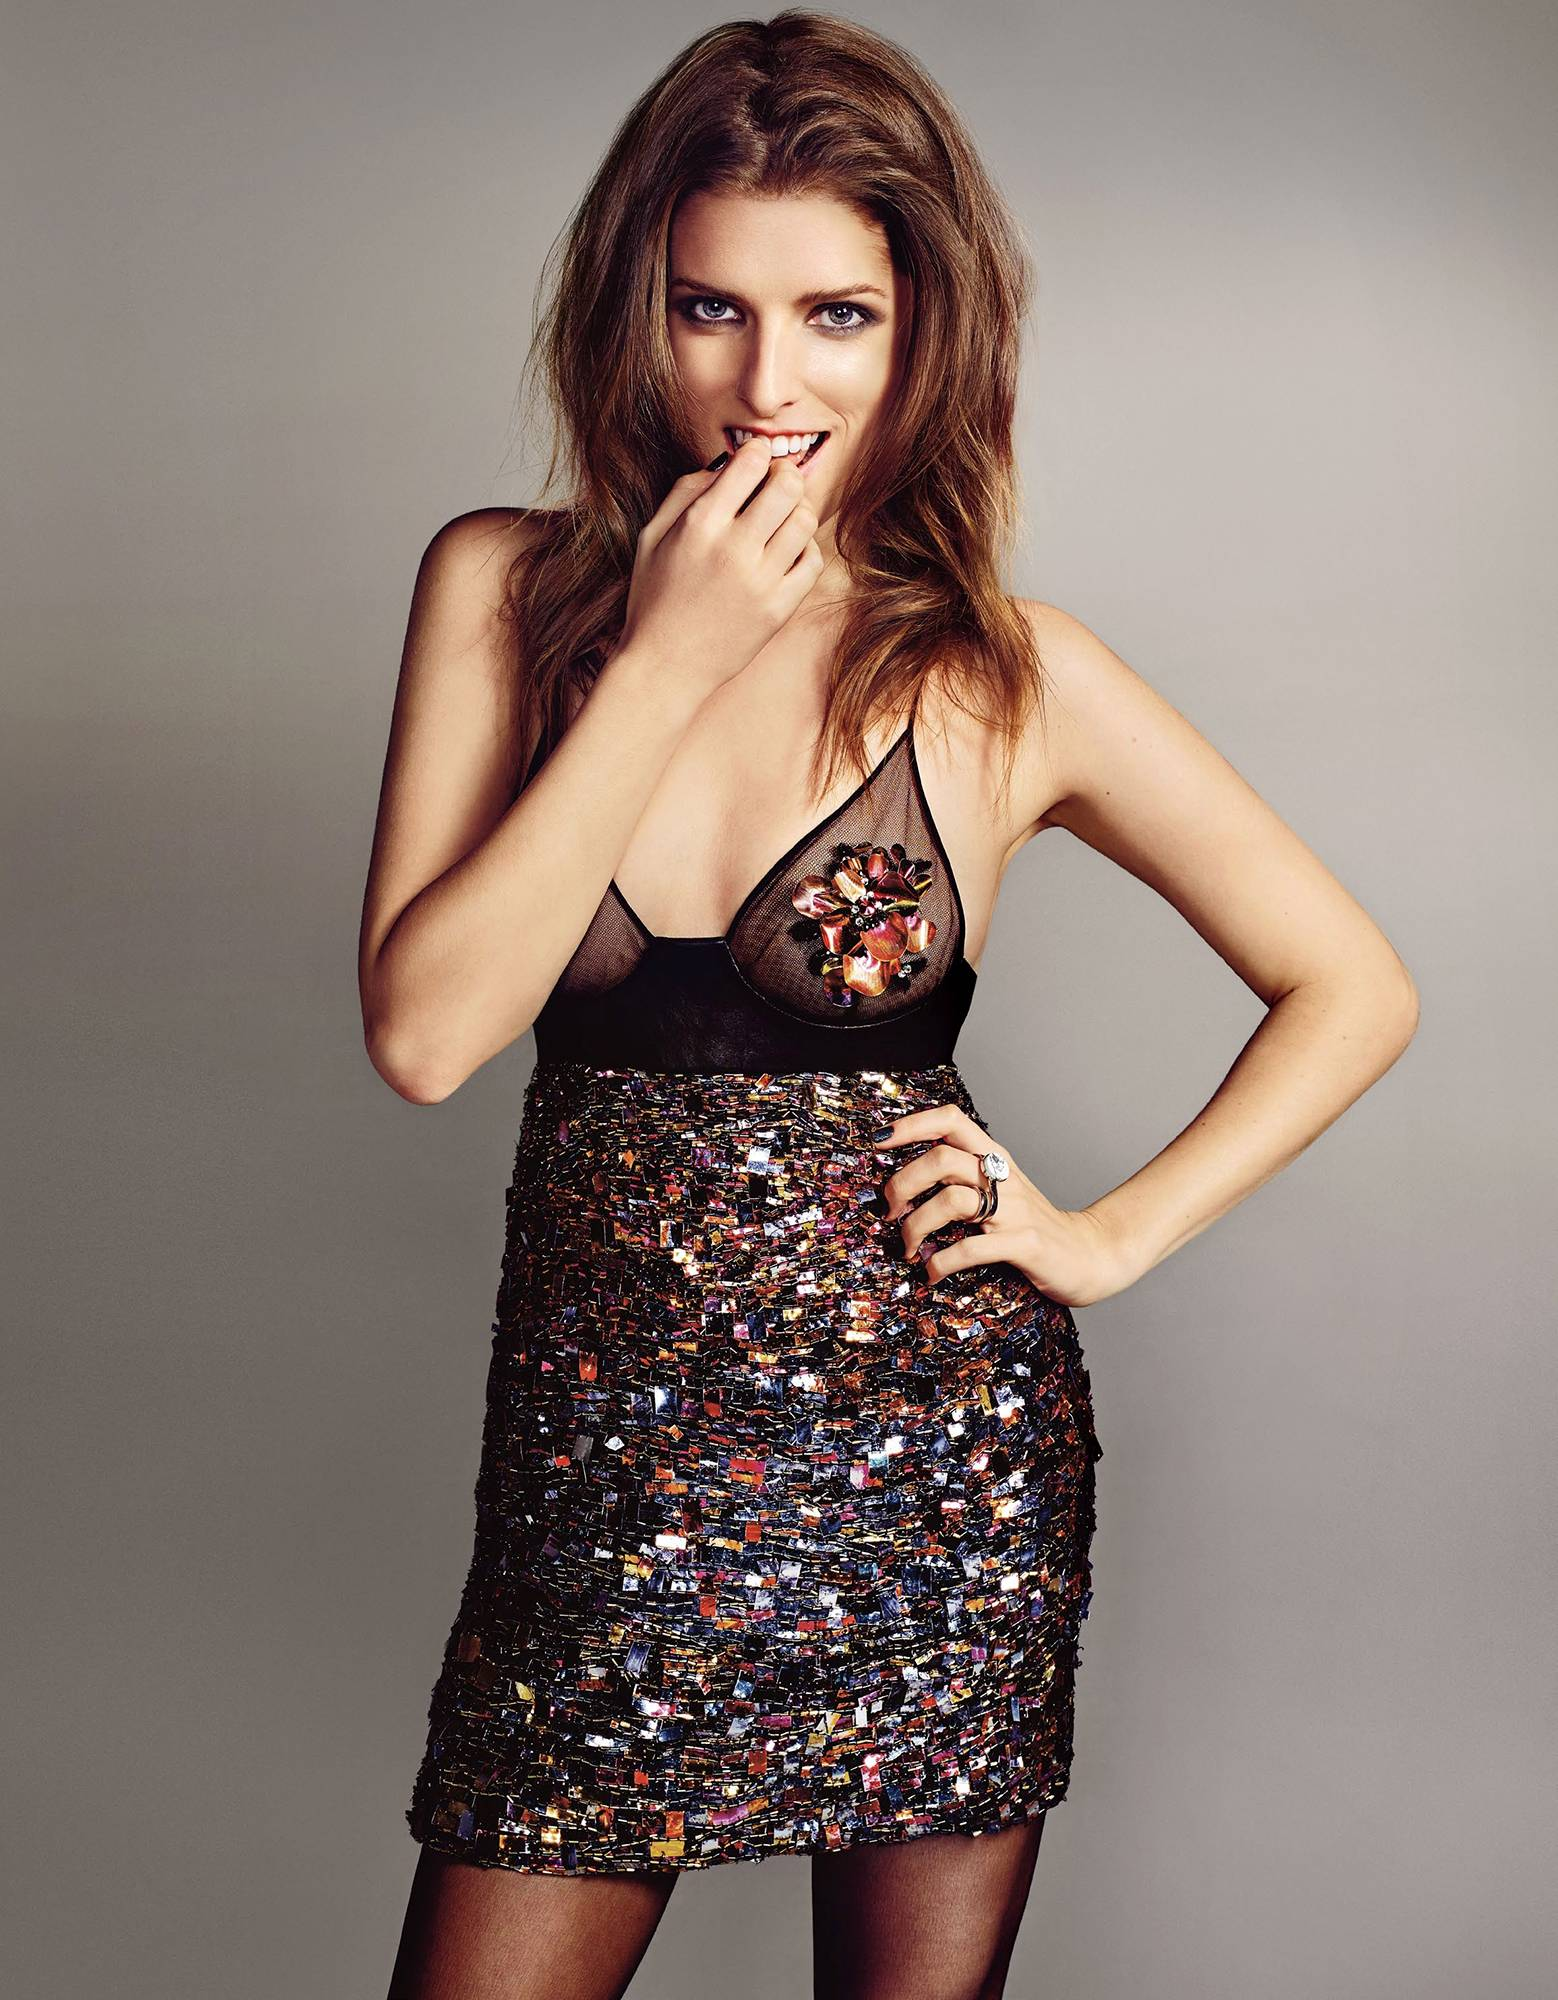 Anna Kendrick awesome cleavages